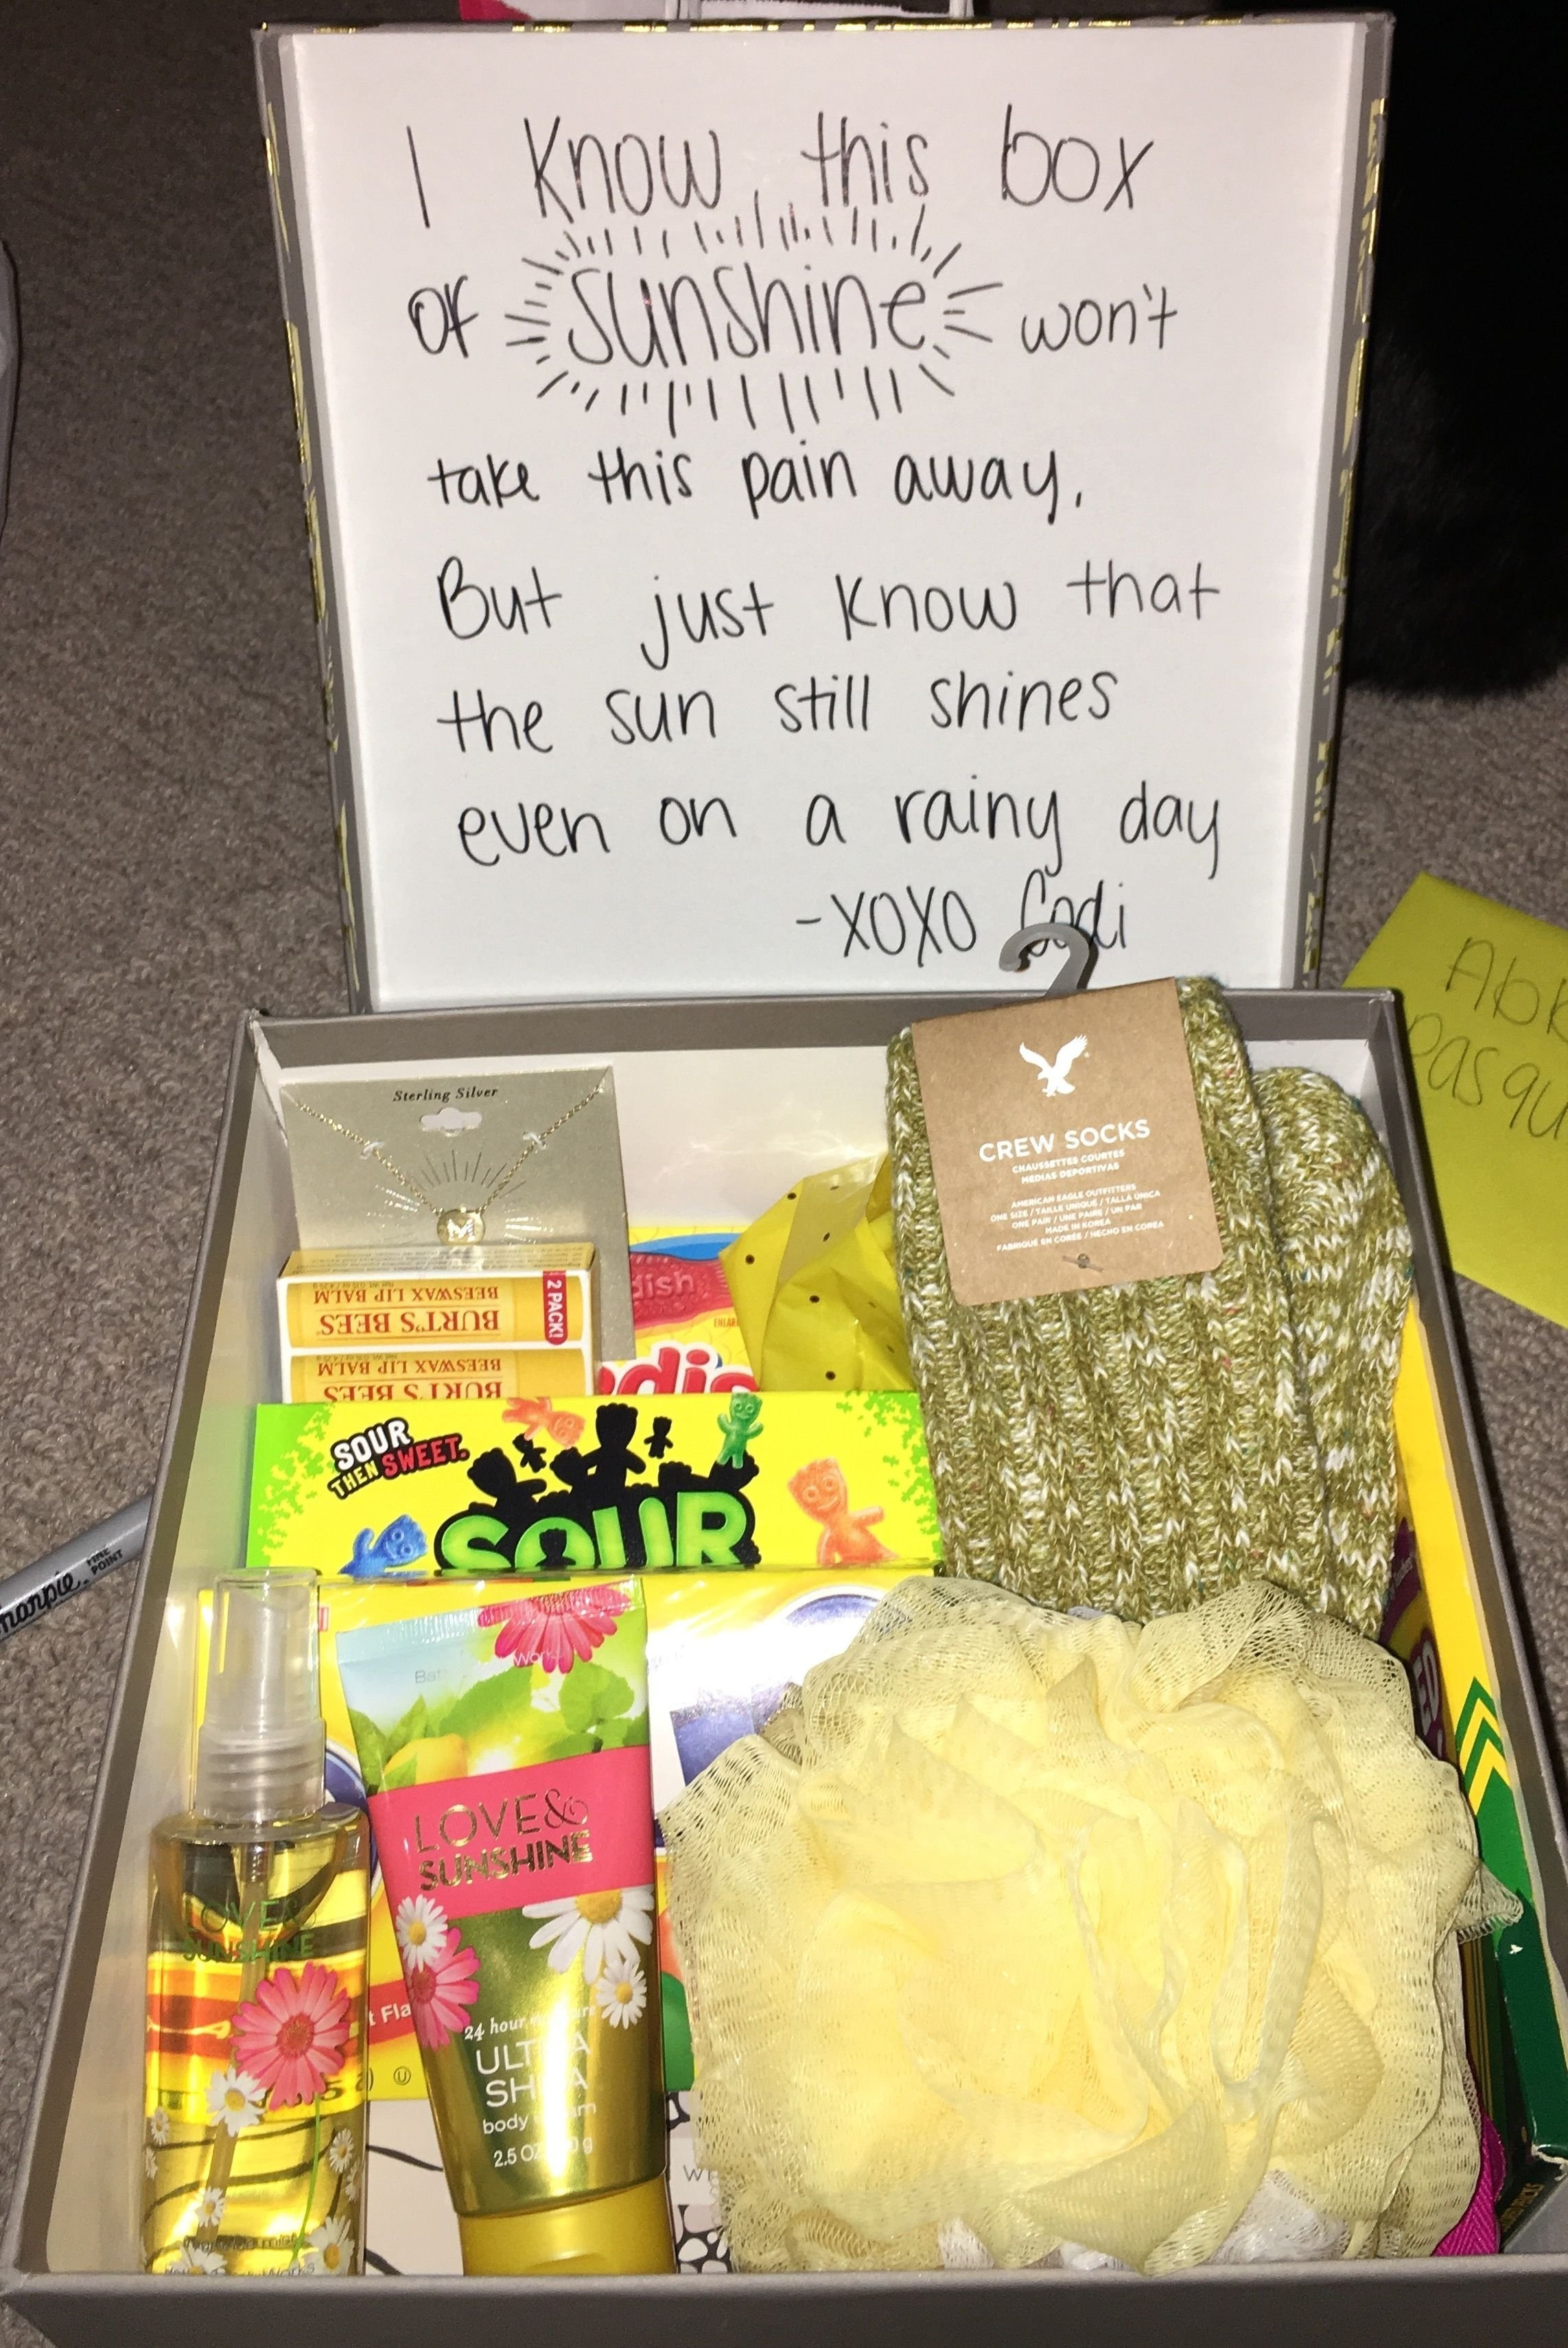 10 Nice Birthday Present Ideas For Best Friend care package for grieving friend good idea pinterest gift 11 2020